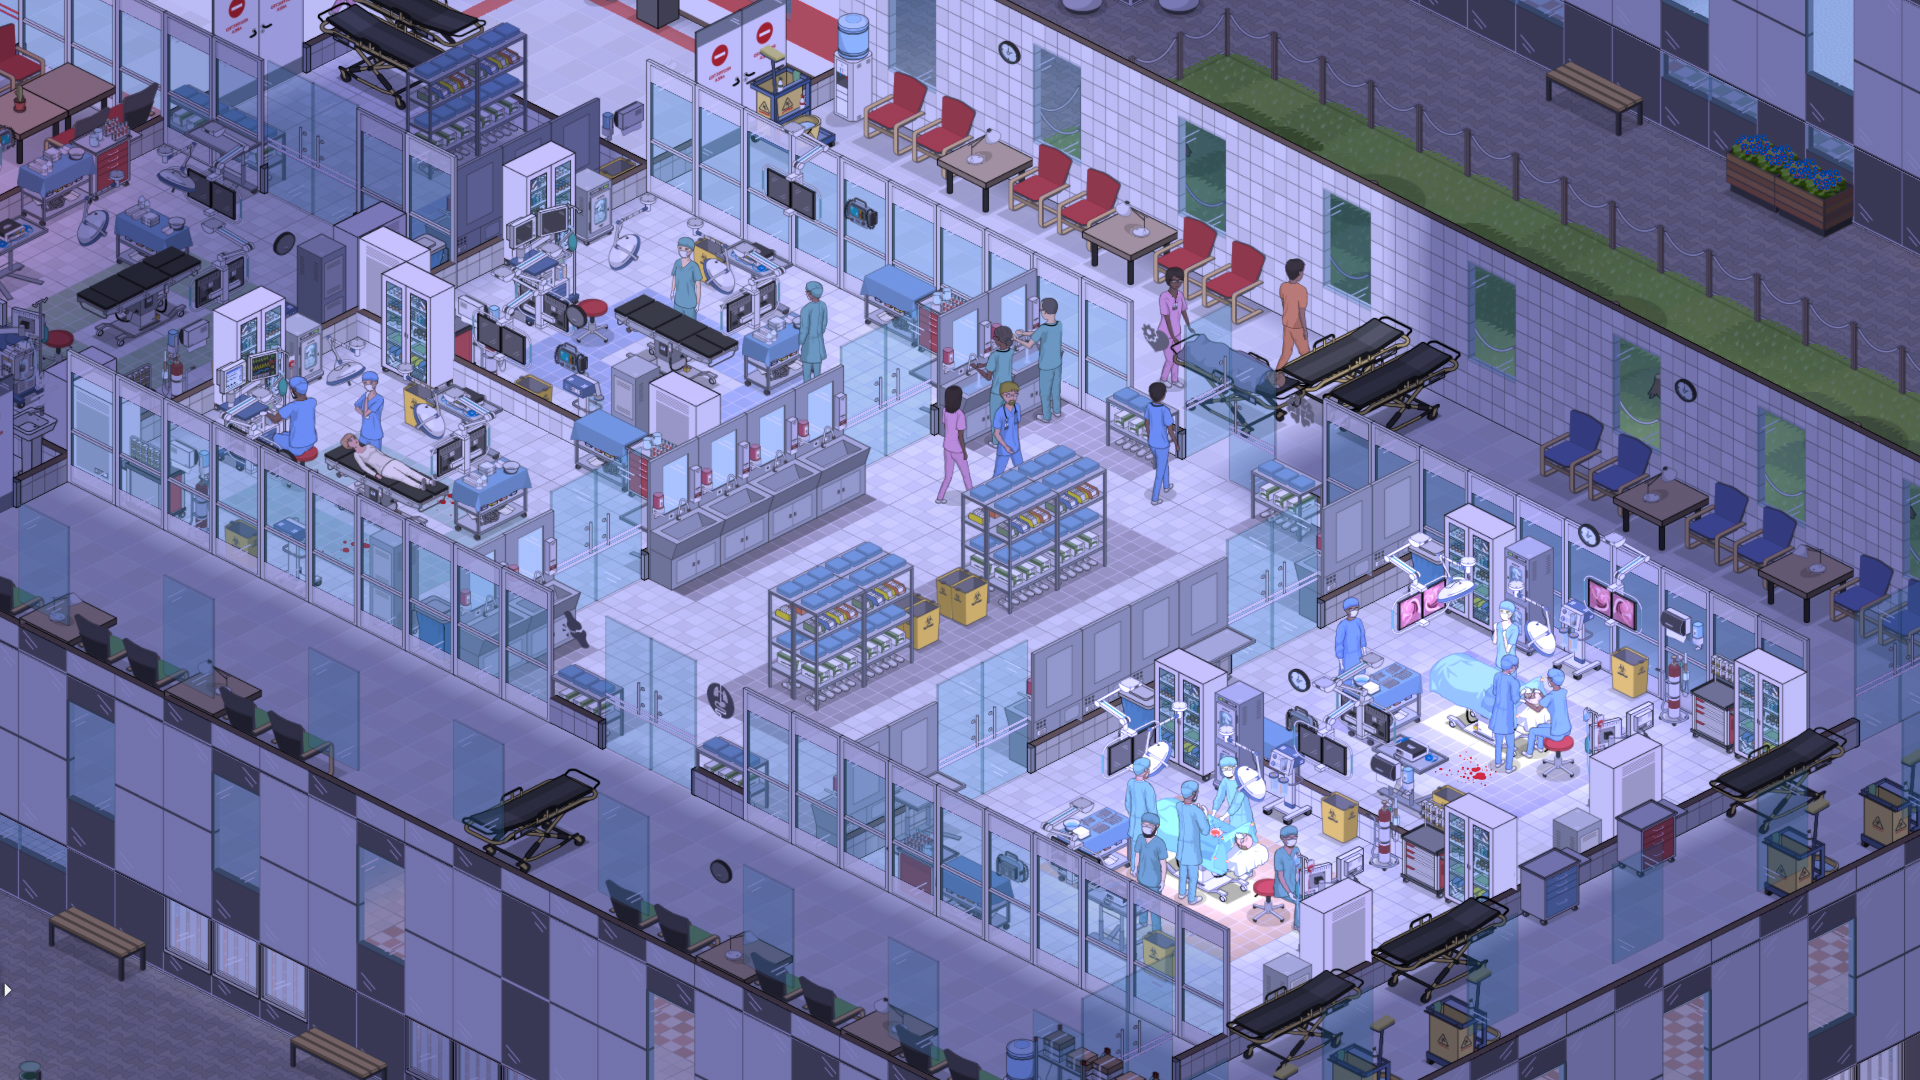 A hossital scene at night in the labs